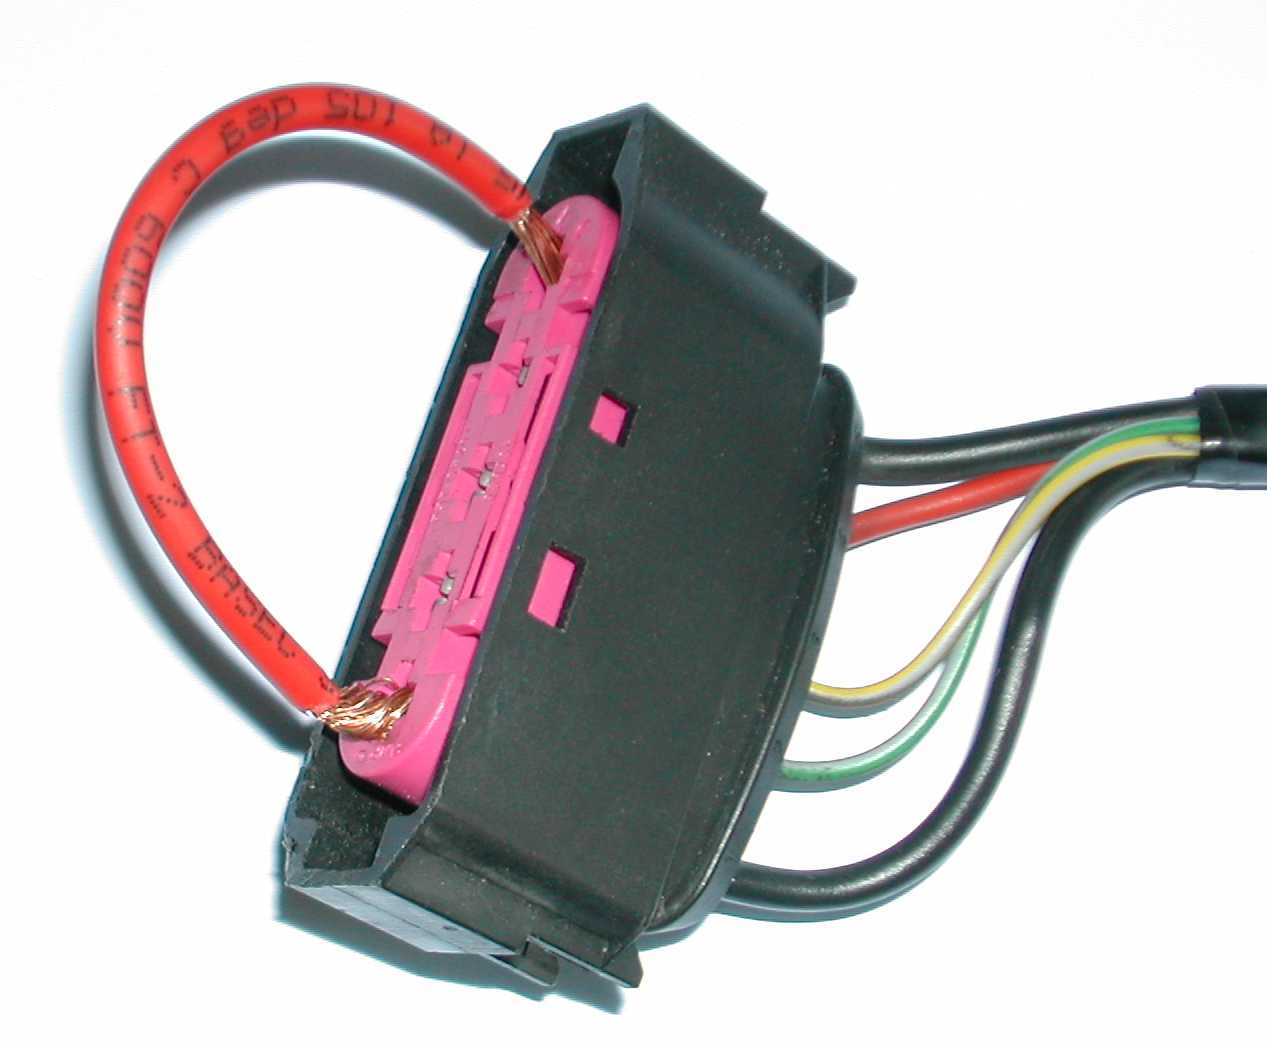 Renault Clio Ii Heater Blower Problem Fixed In Minutes Jeep Fuse Box Testing Resistor By Shorting The Connector